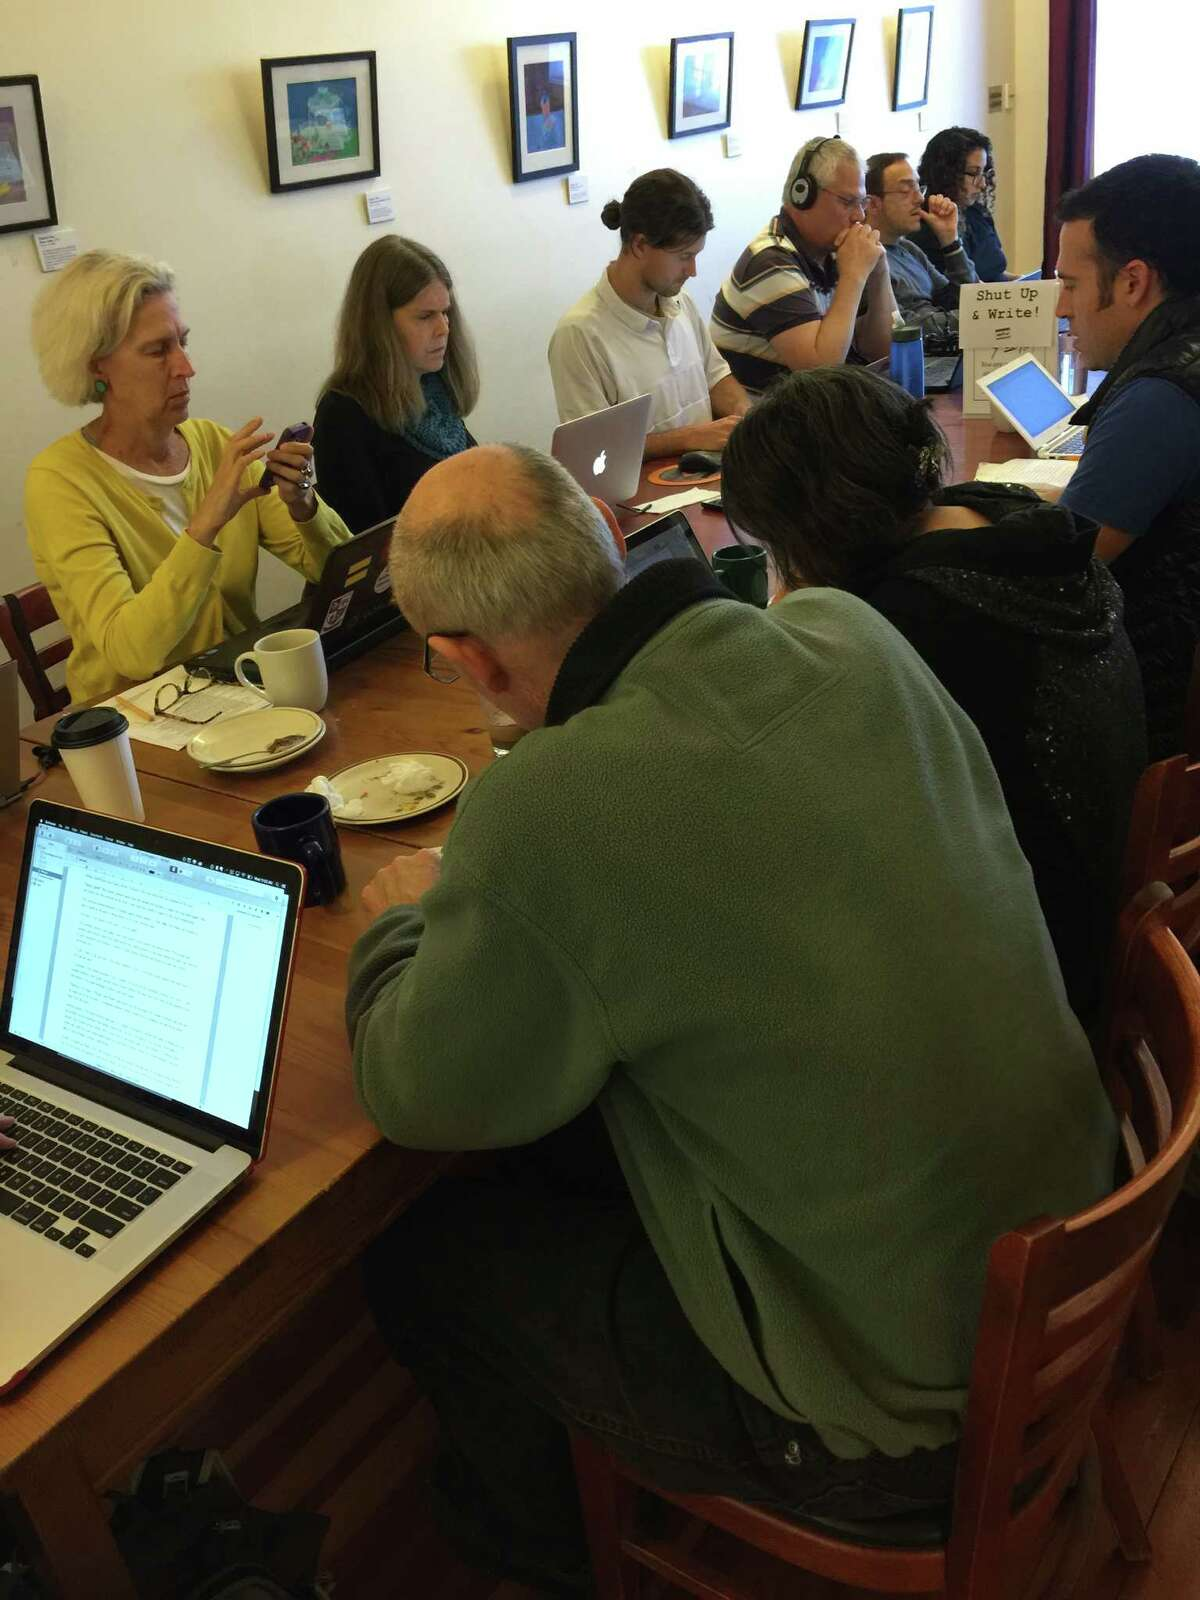 The Shut Up and Write crowd meets in a cafe